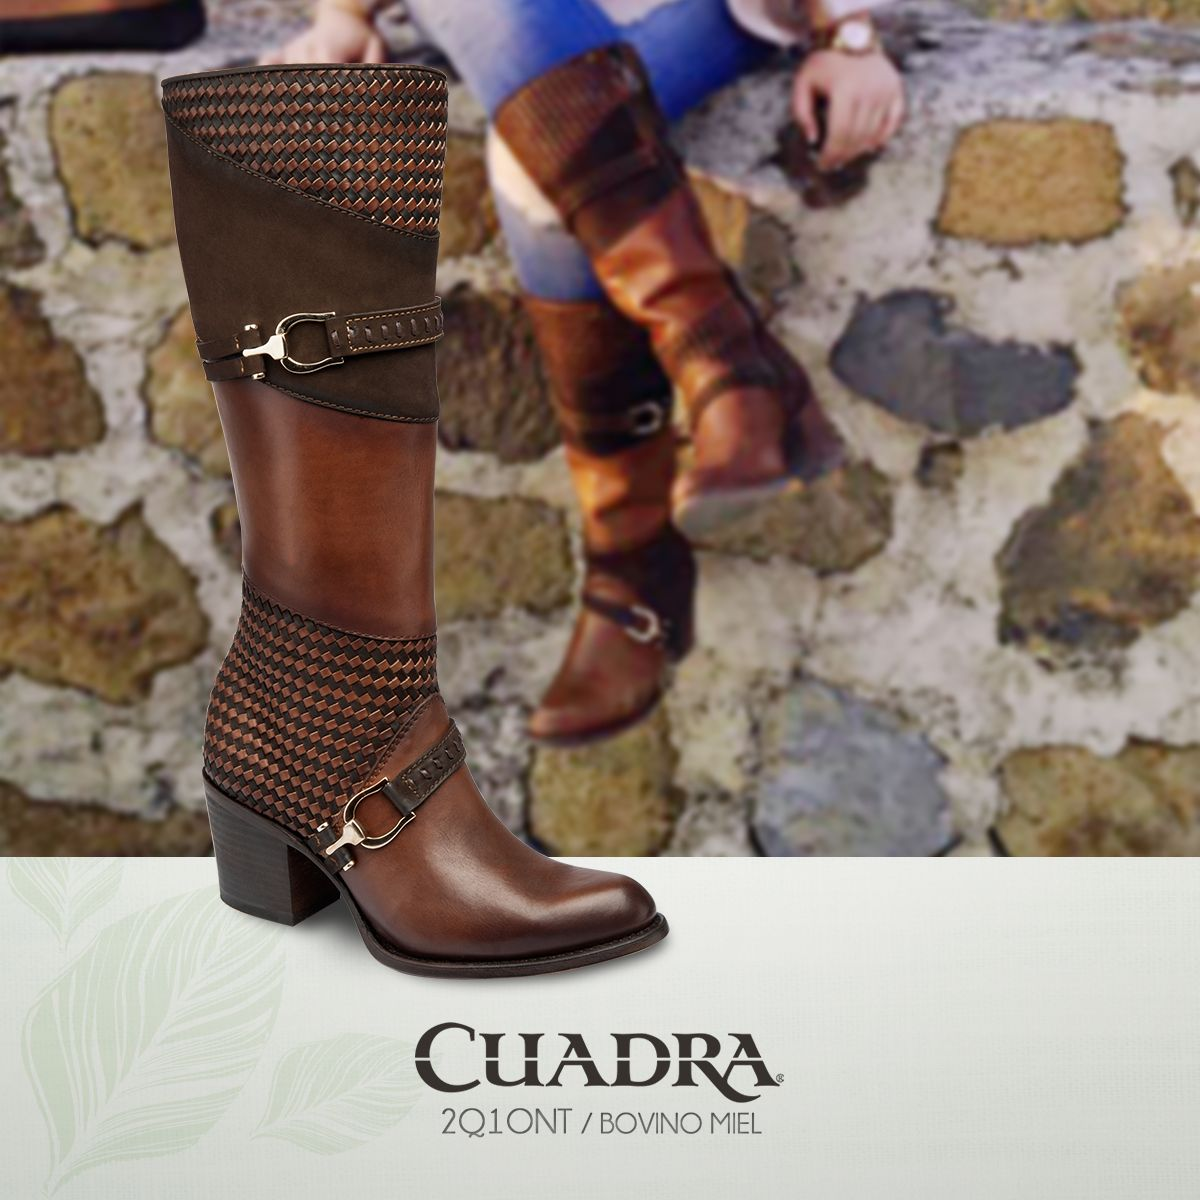 52bd6cd46 La clase se impone.  botas  exoticleather  mujer  moda